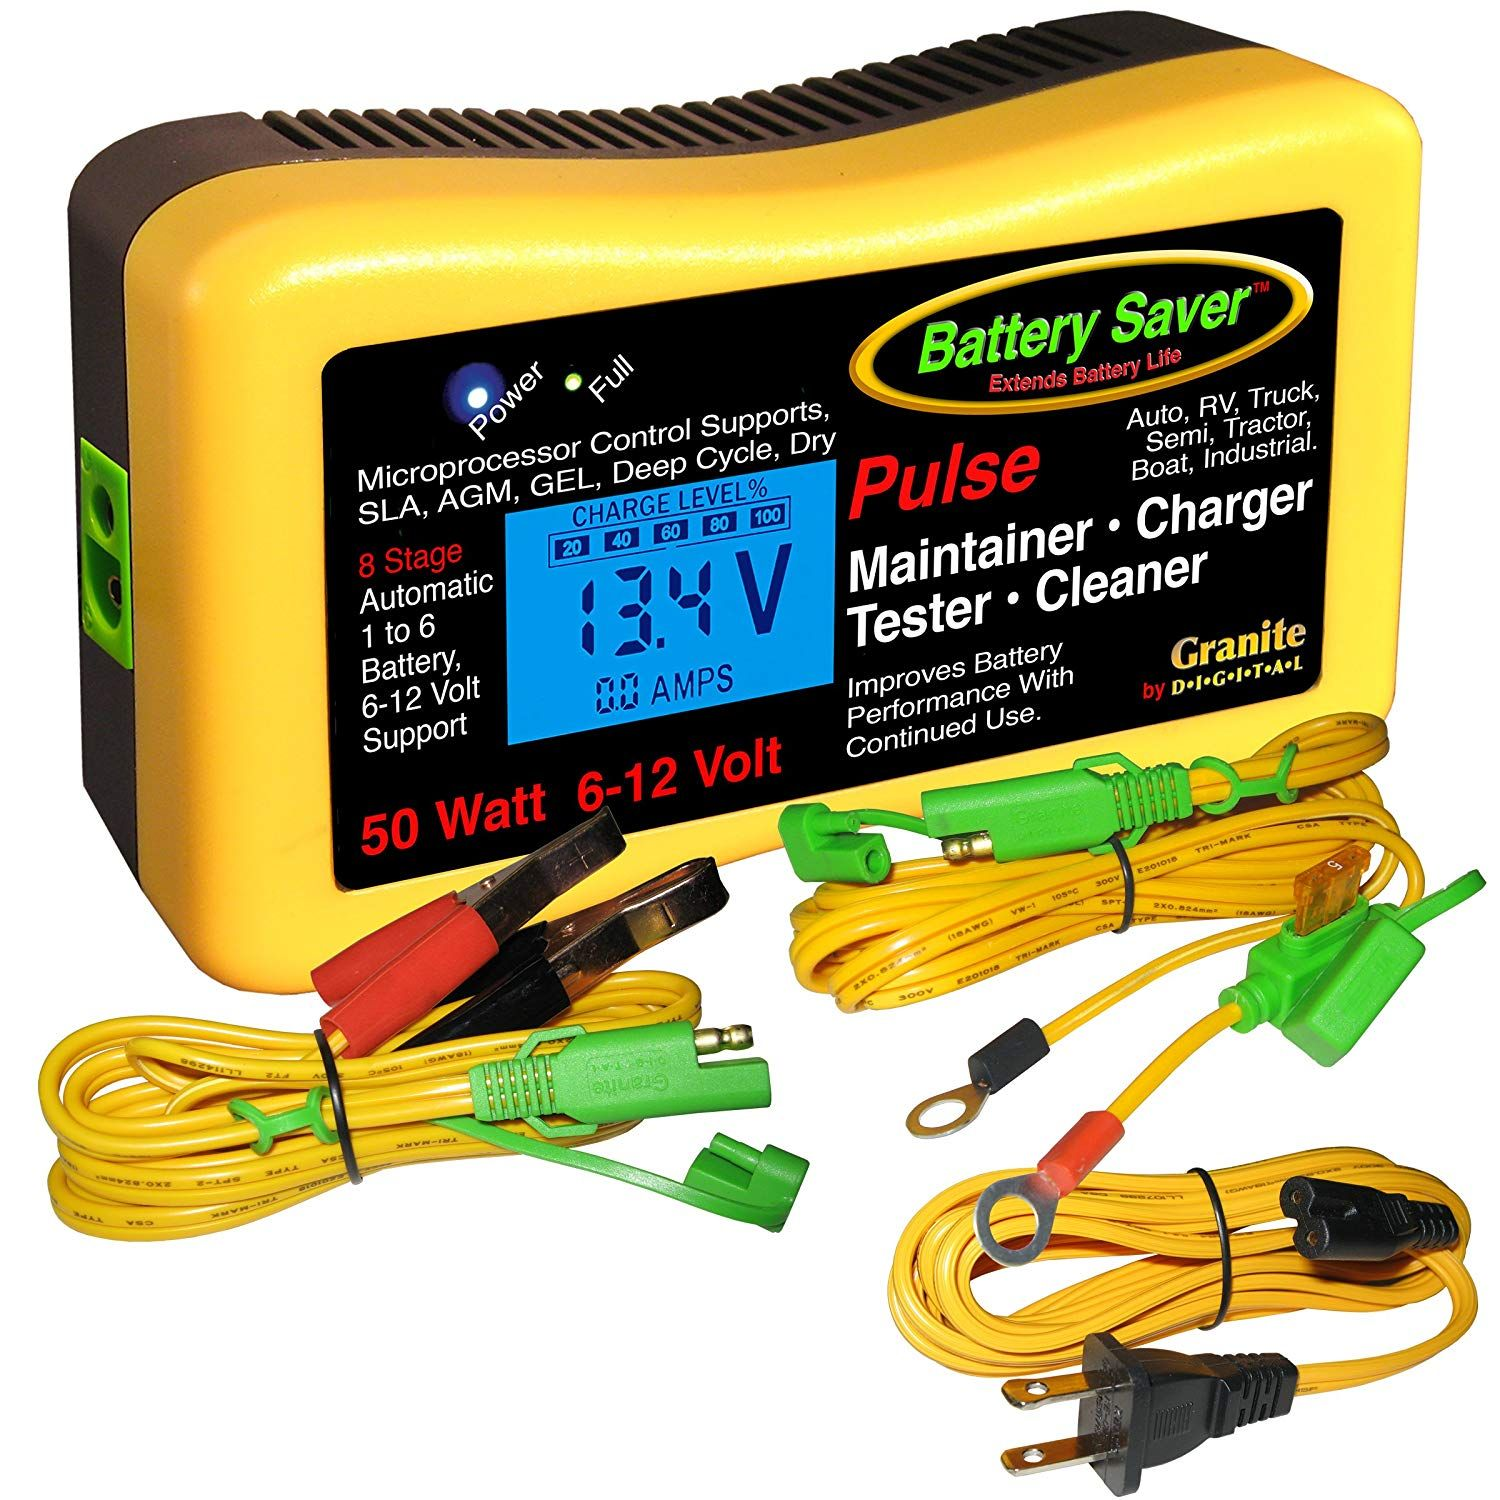 Battery Saver 2365 Lcd Battery Charger Maintainer Pulse Cleaner And Tester 50 W 6v And 12 V See This Great Product Th Battery Charger Battery Charger